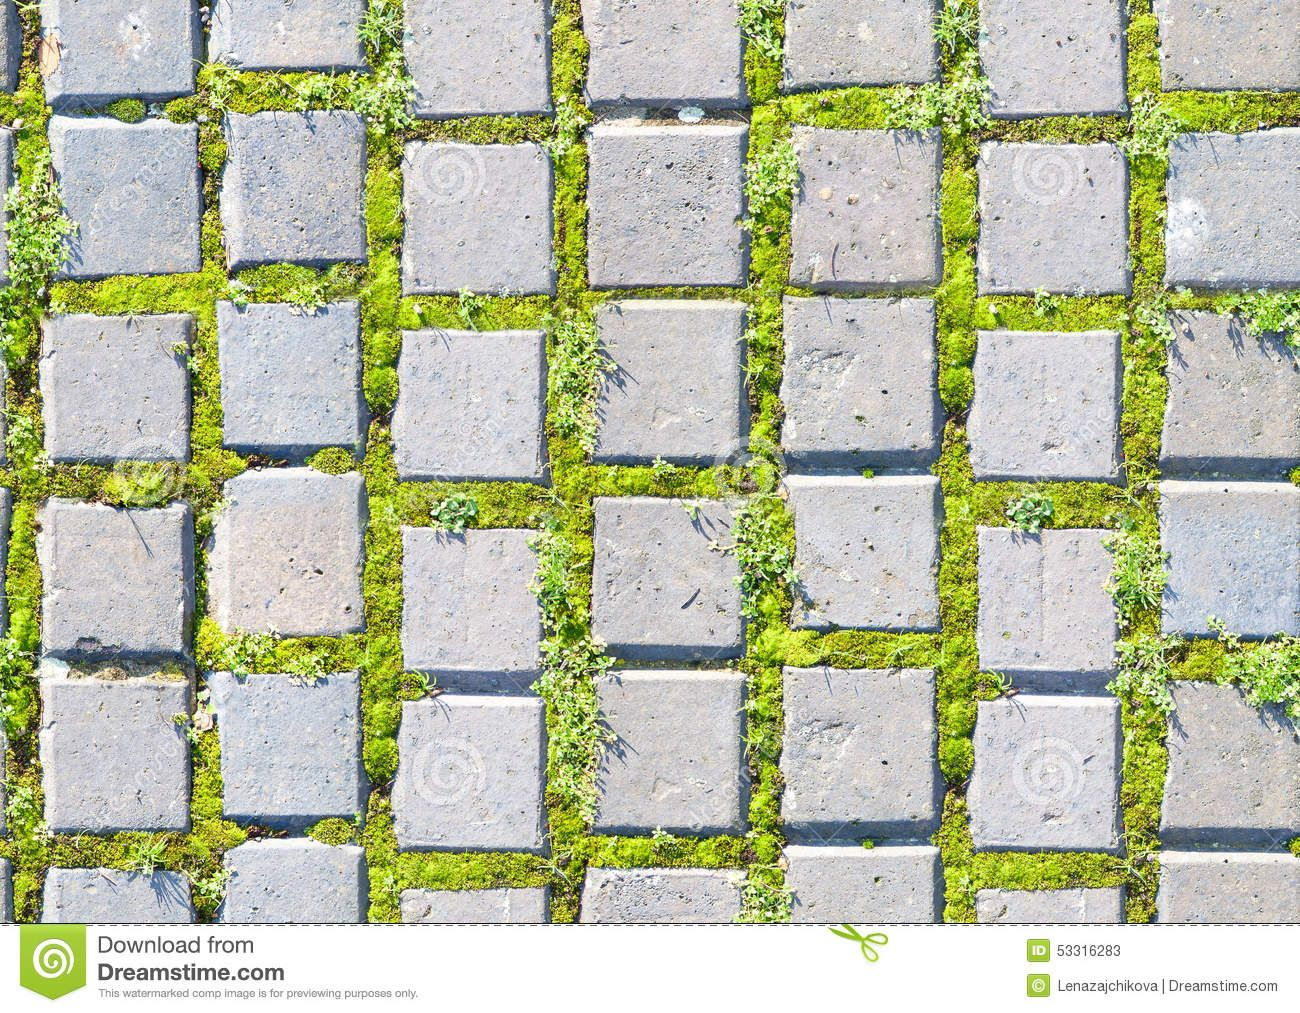 K t qu h nh nh cho top view grass and stone texture for Paving planner